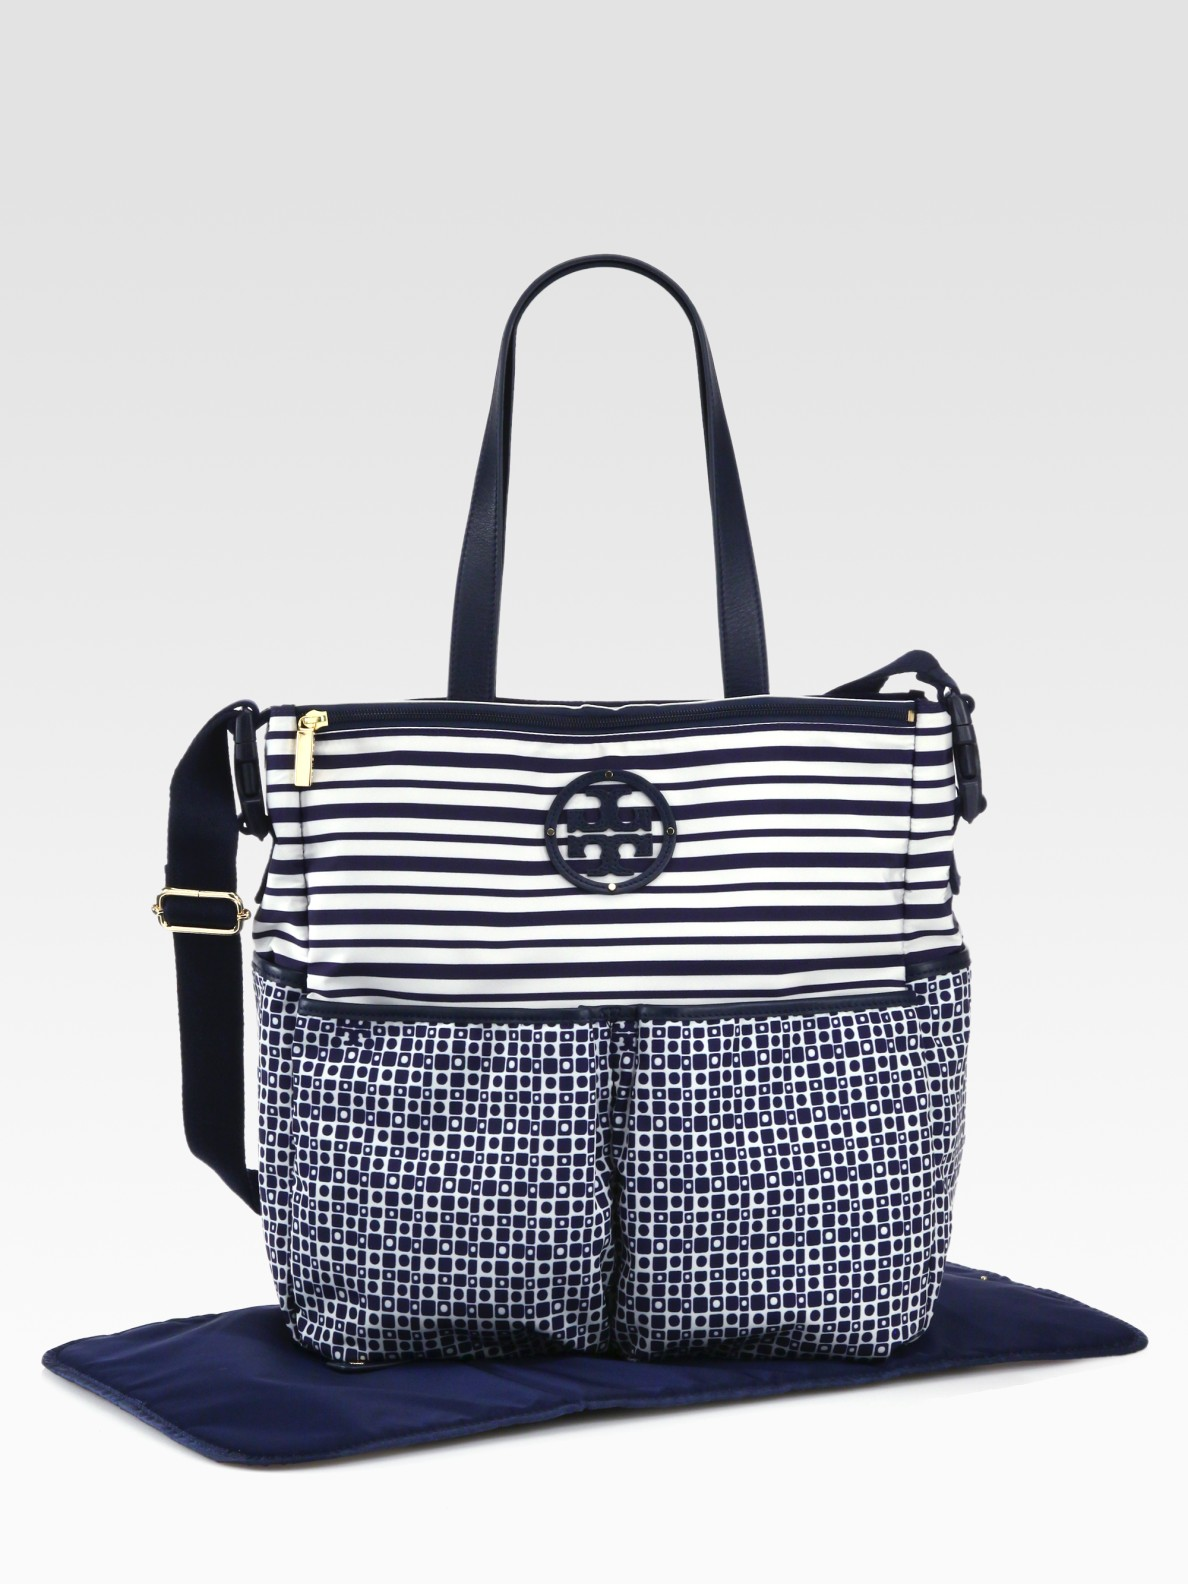 tory burch mixedprint nylon diaper bag in blue navy lyst. Black Bedroom Furniture Sets. Home Design Ideas